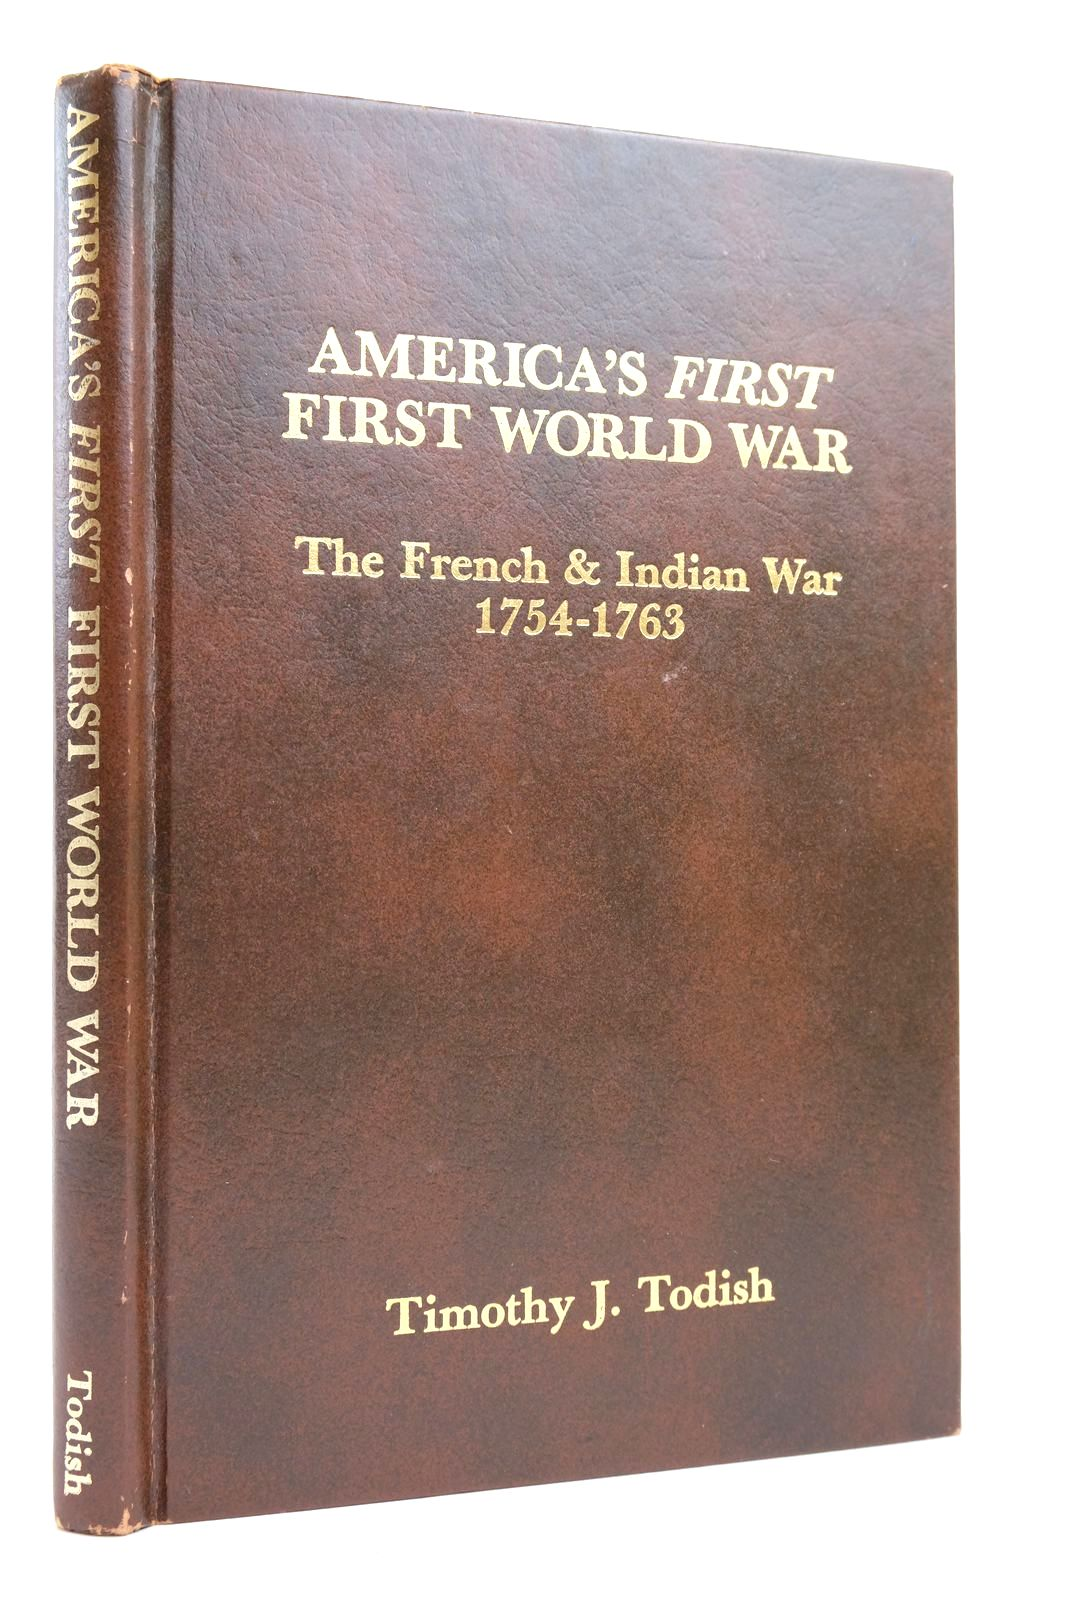 Photo of AMERICA'S FIRST FIRST WORLD WAR: THE FRENCH & INDIAN WAR 1754-1763- Stock Number: 2135051